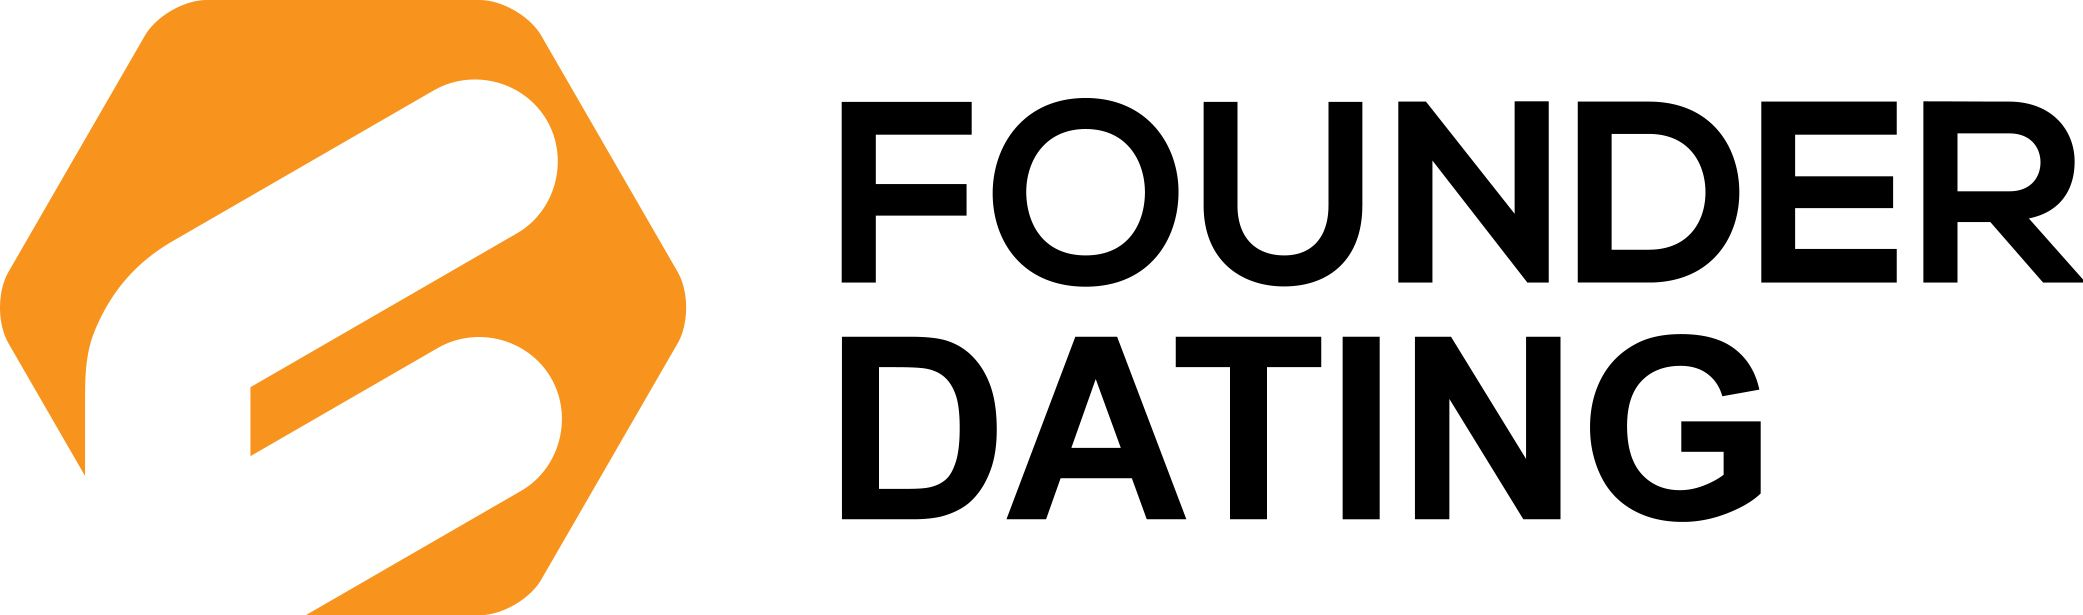 Founderdating feedback